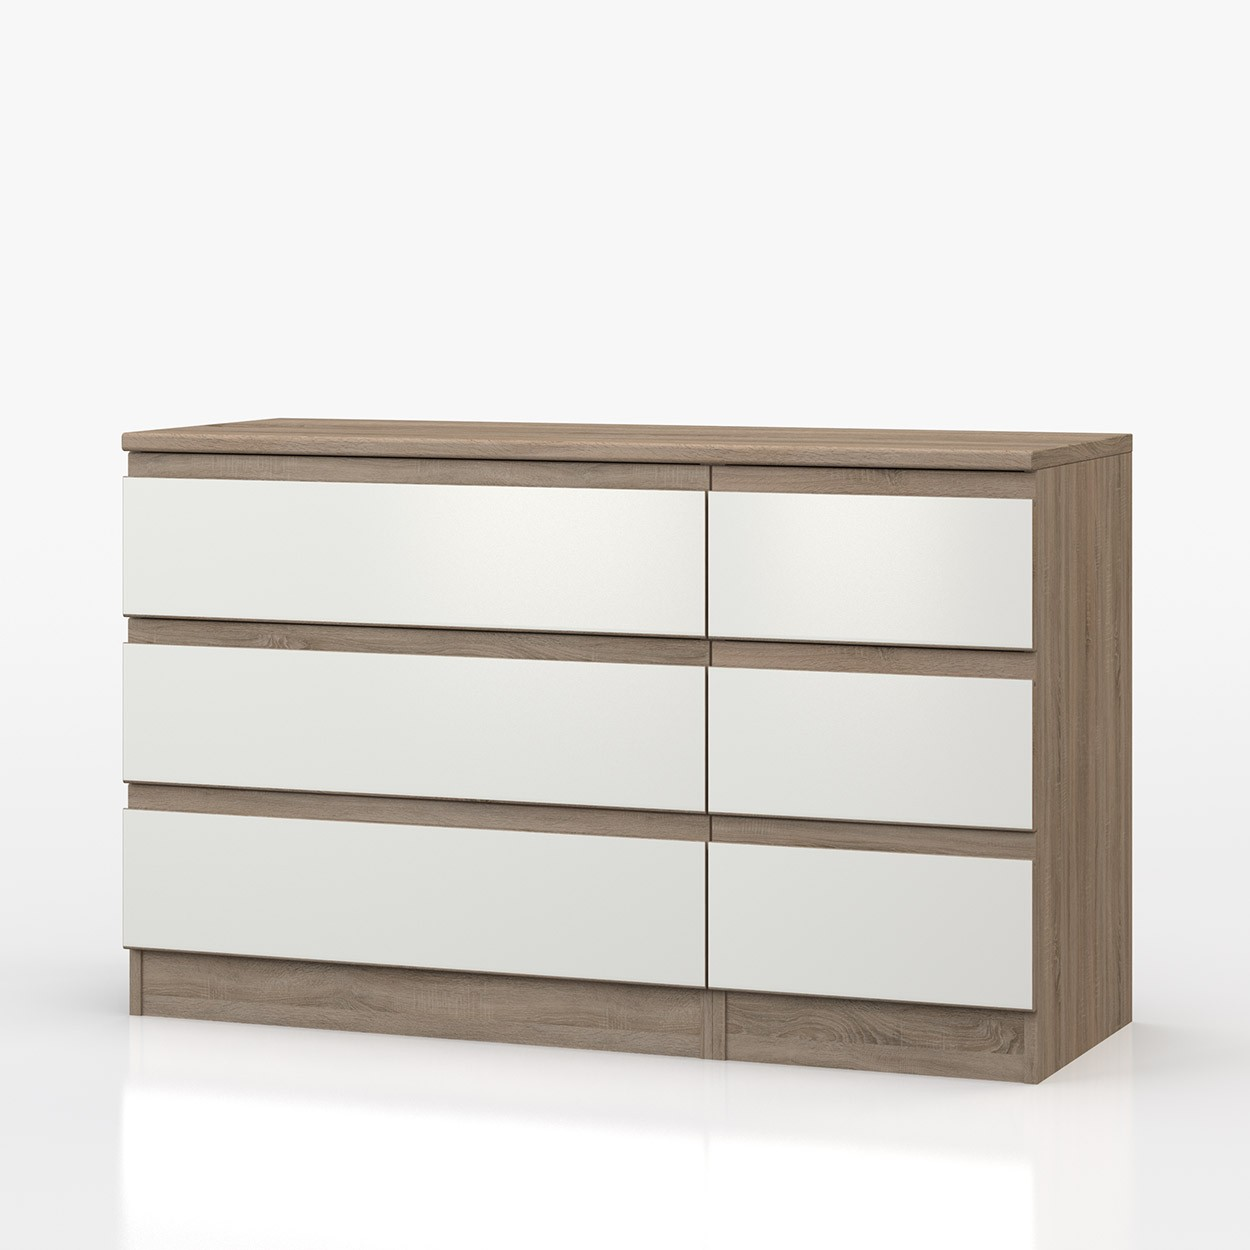 Avenue Truffle Oak And White Gloss 3 Drawer Double Chest